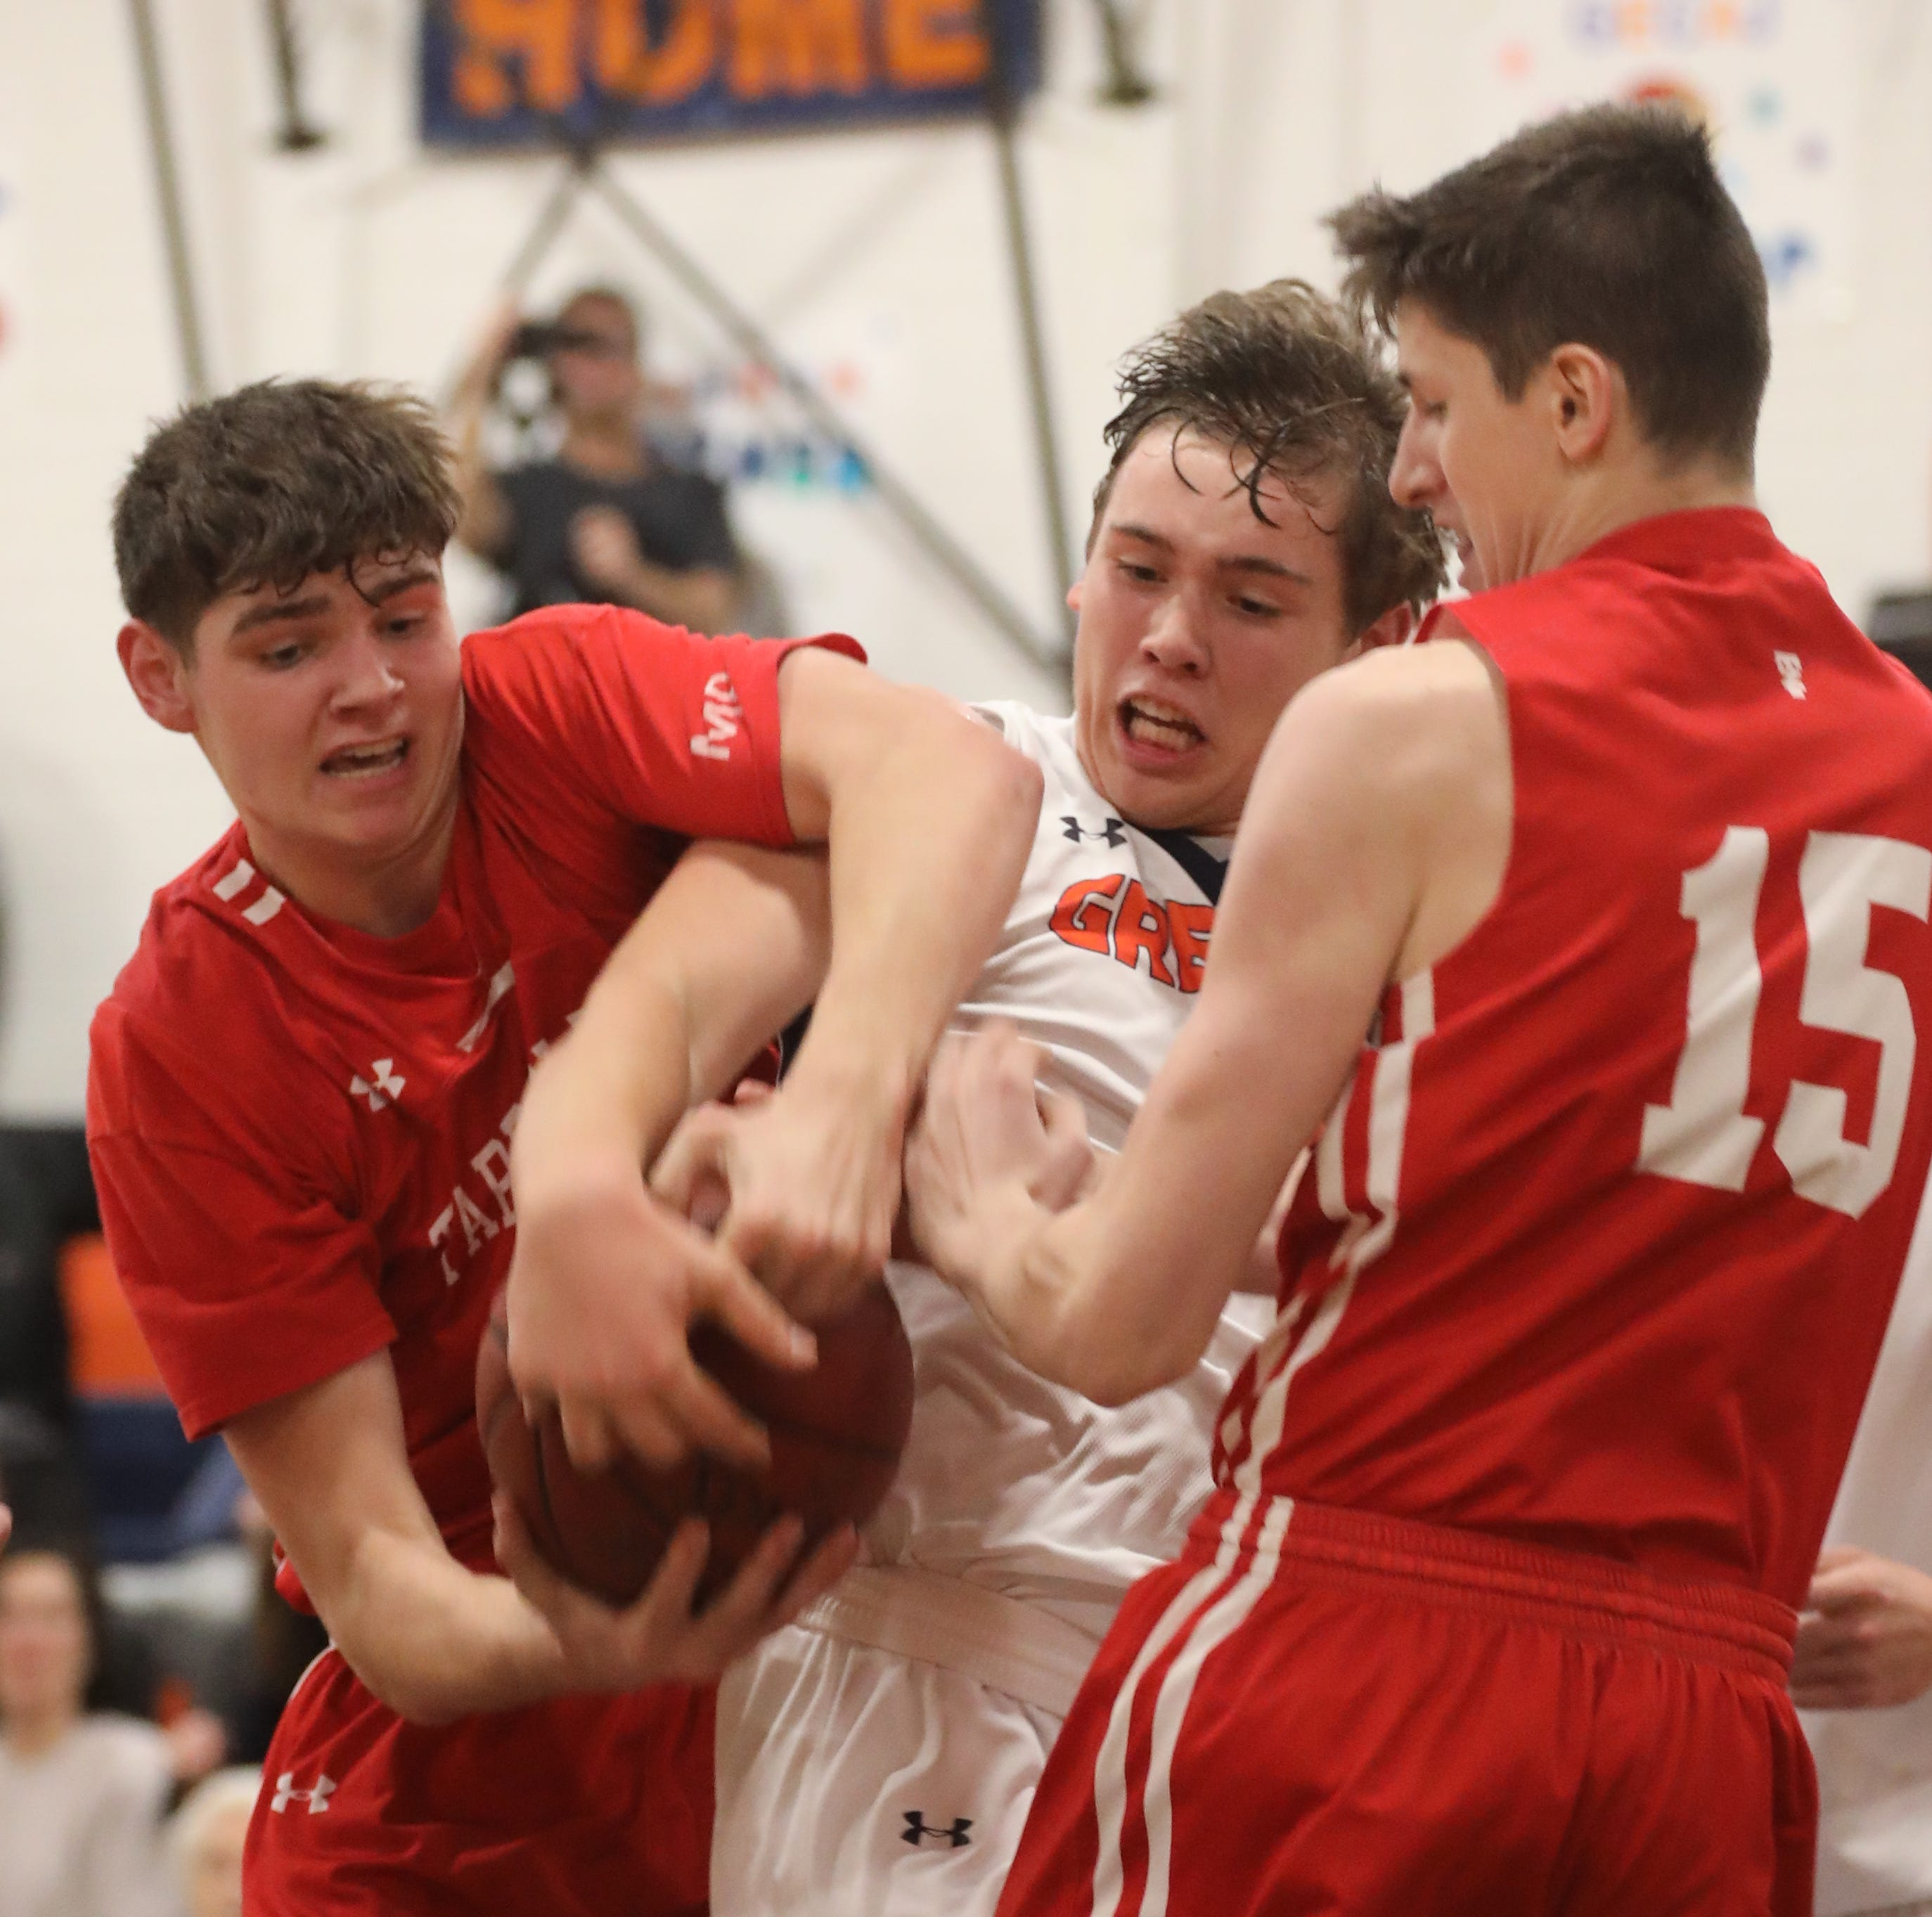 Boys basketball: In another thriller, Tappan Zee earns season-opening win